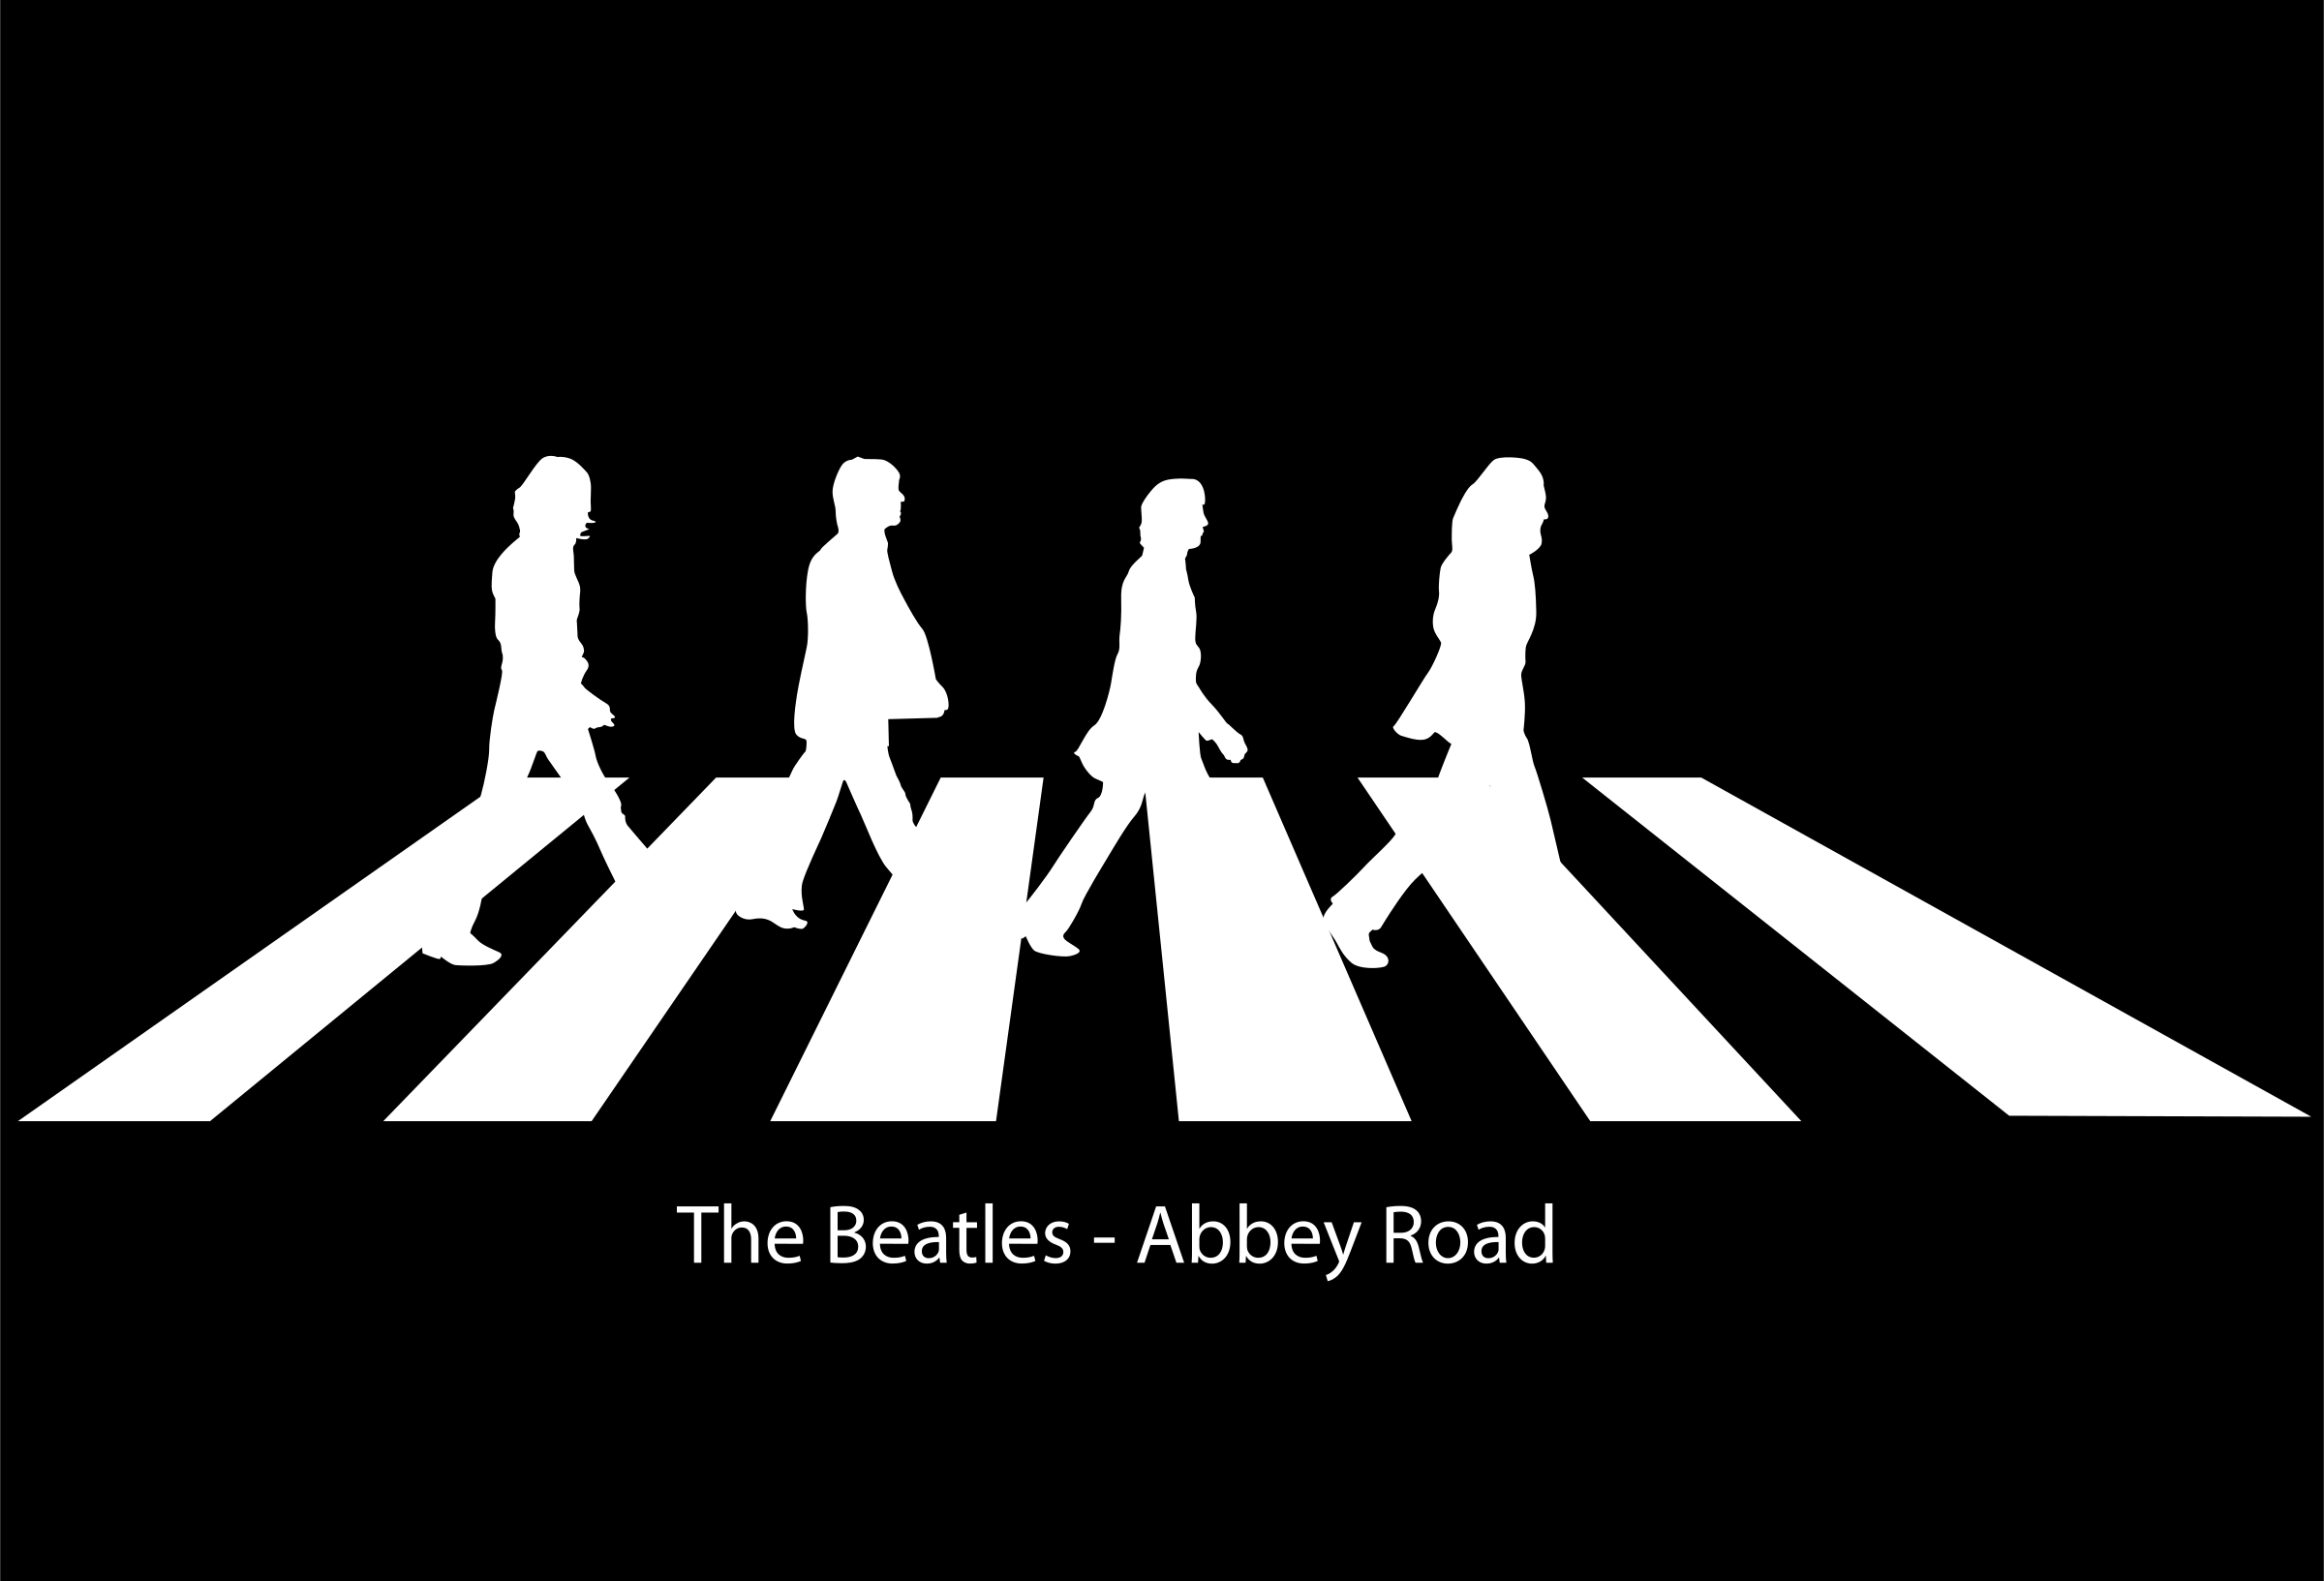 The Beatles Logo - The Beatles AR Logo PNG Transparent & SVG Vector - Freebie Supply